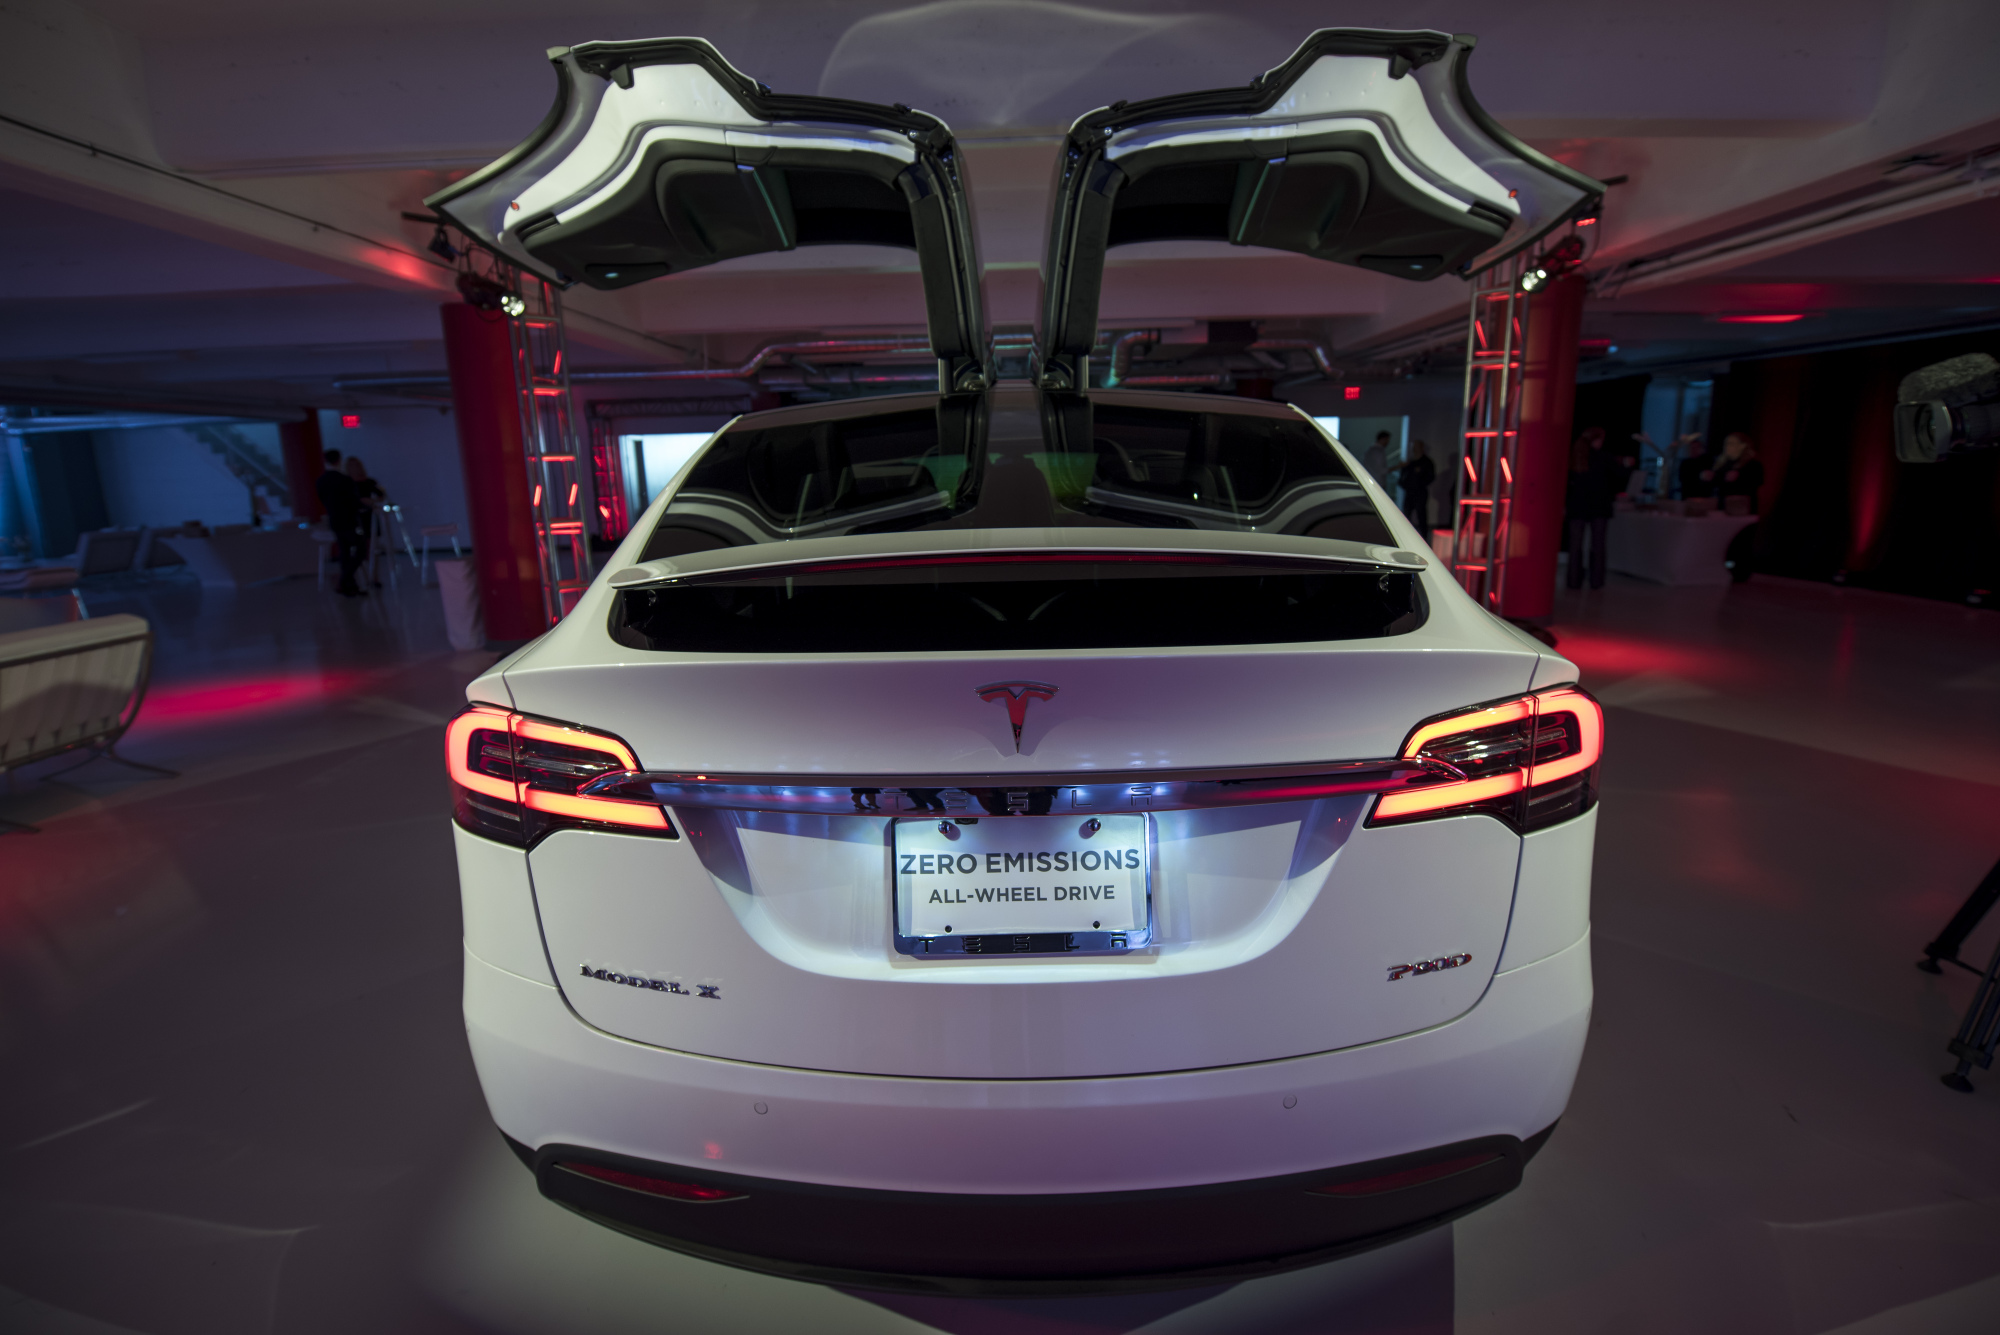 A Tesla Model X stands on display at the company's showroom in San Francisco. Japan's Tanaka Chemical, which has a long history in developing battery materials, is riding on Tesla's drive to make electric vehicles ubiquitous.   BLOOMBERG